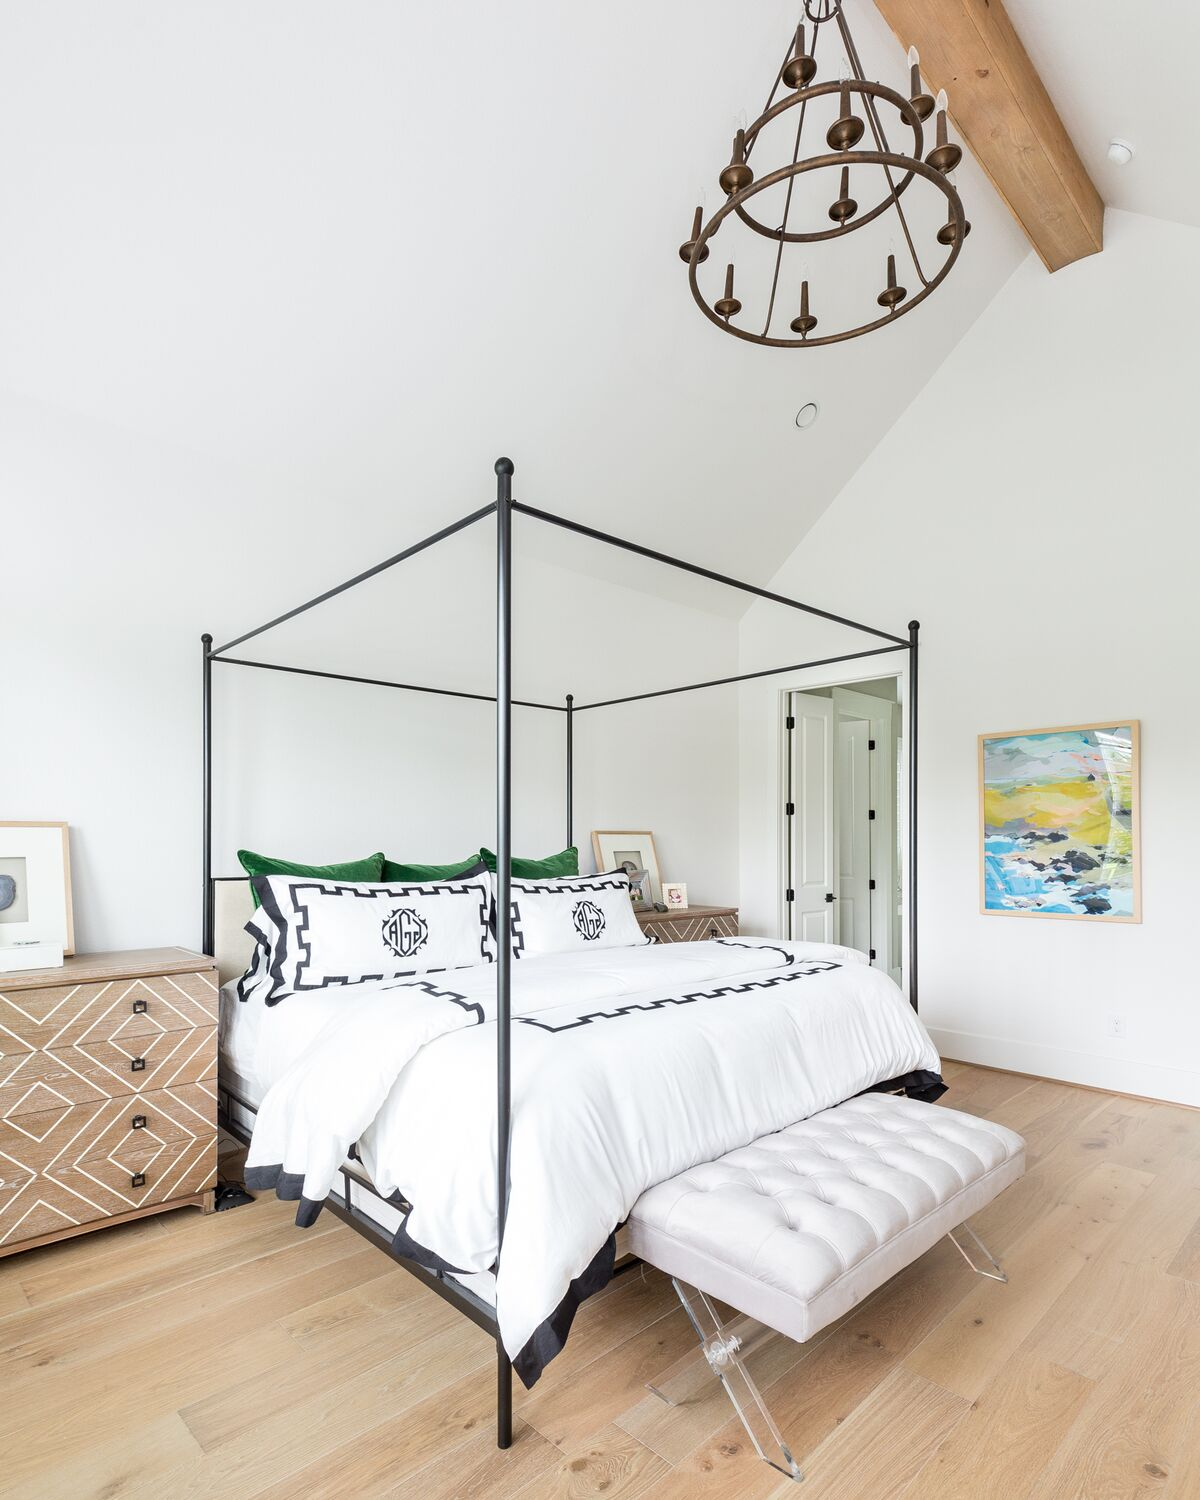 Come see this modern farmhouse featuring a master bedroom with an iron canopy bed and white oak engineered hardwood floors.